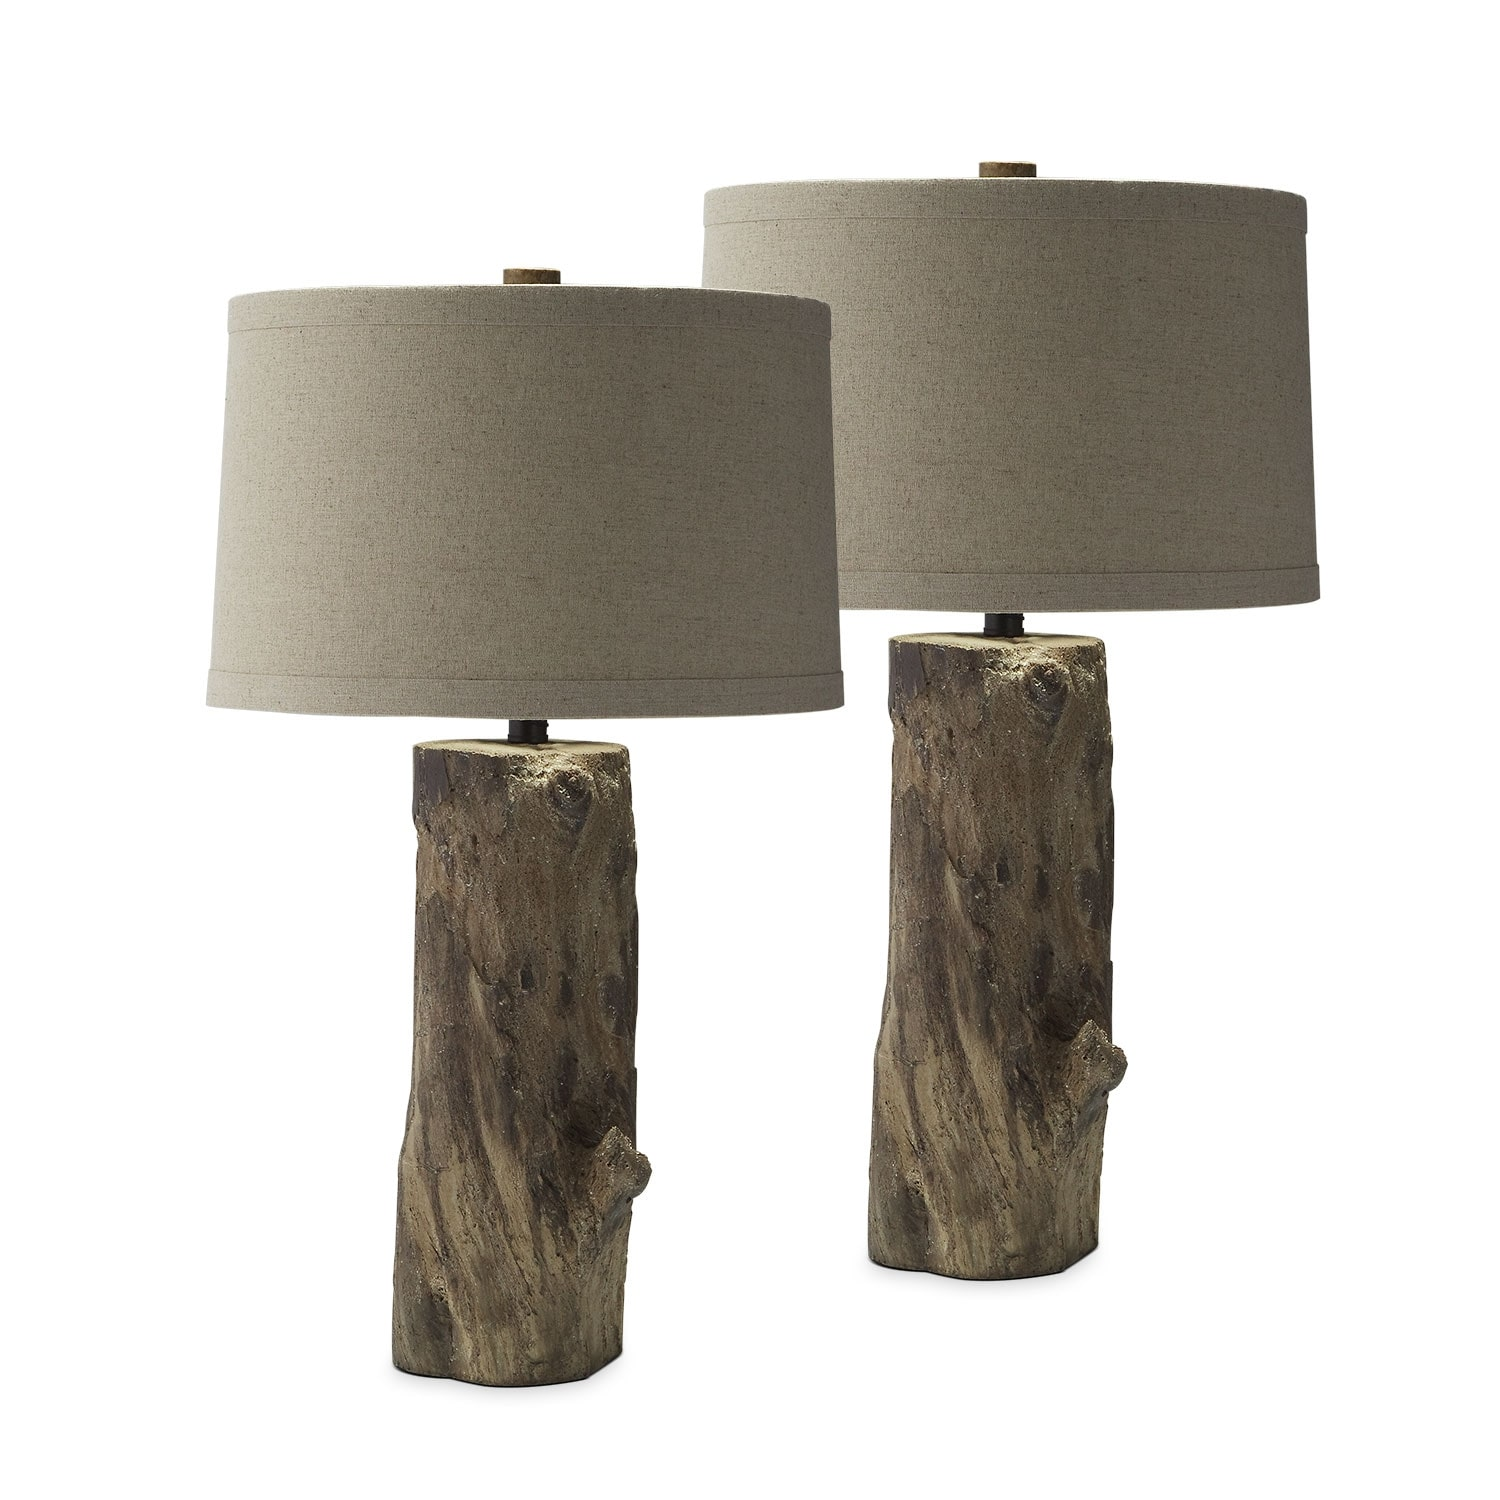 Home Accessories   Faux Wood Stump 2 Pack Table Lamp Set